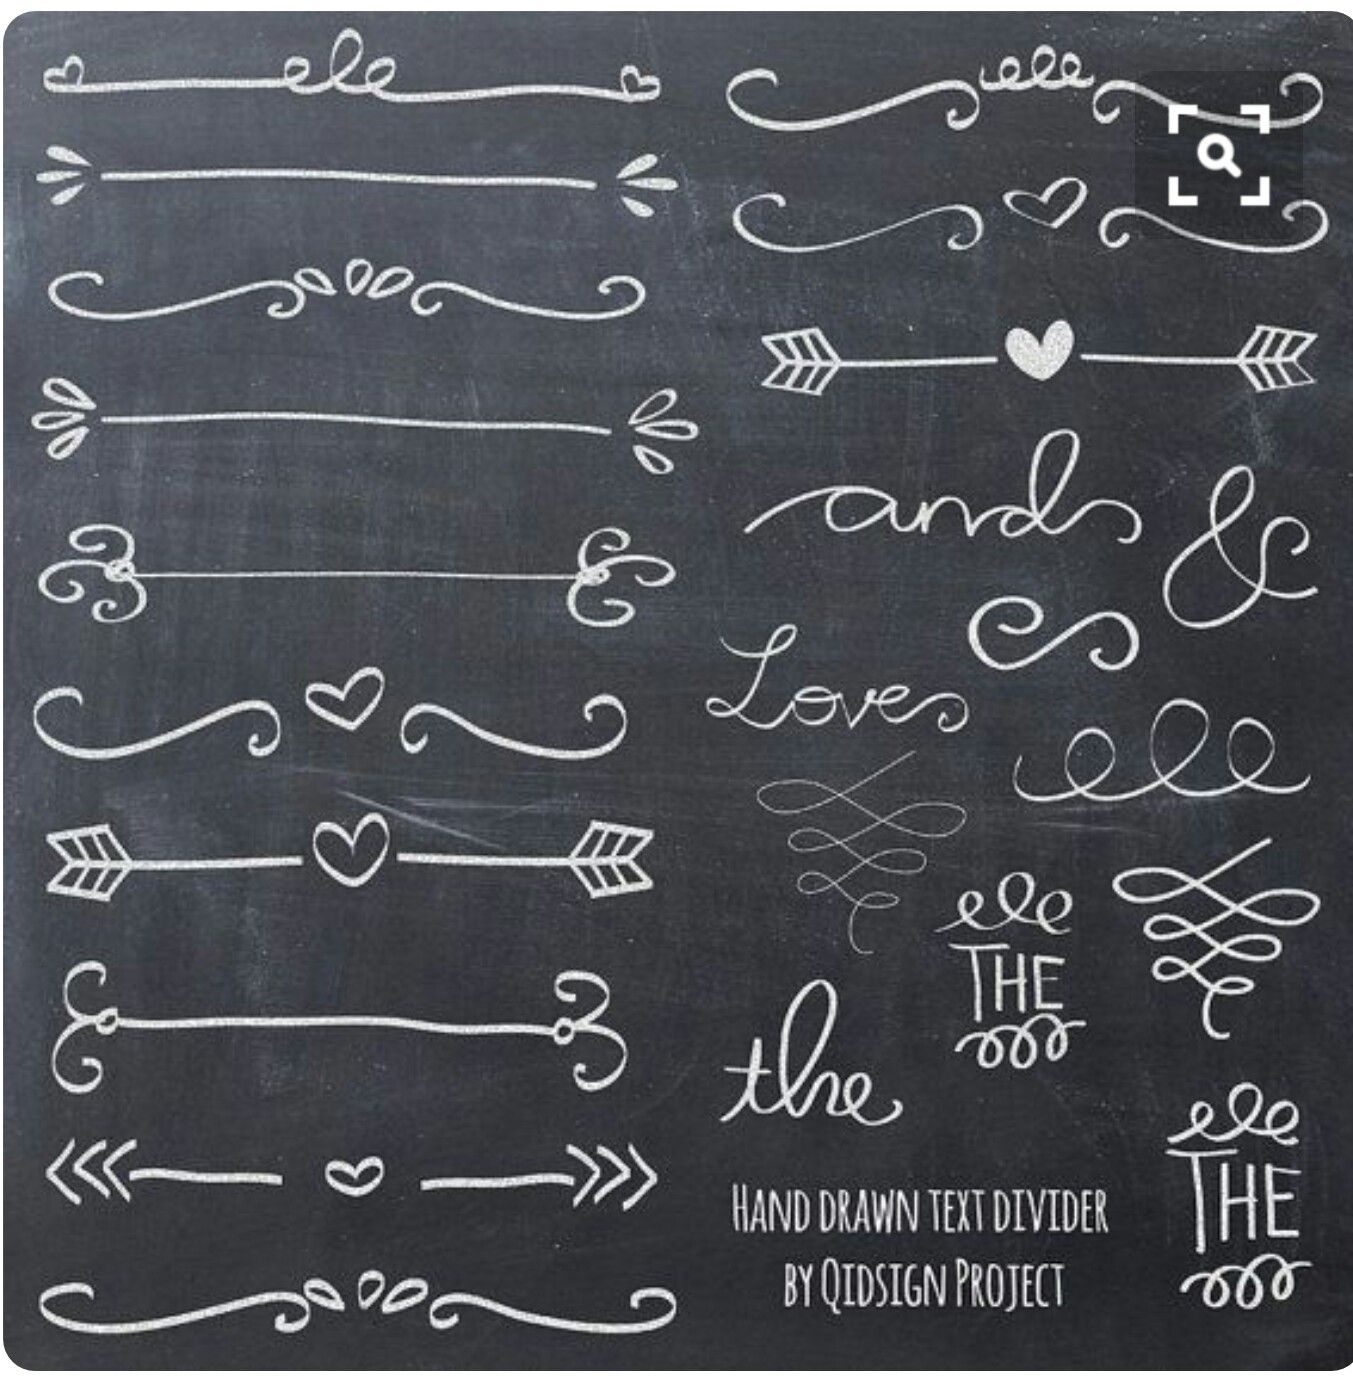 pingl par ruth rodriguez sur chalkboard doodles pinterest dessin tableau et tableau noir. Black Bedroom Furniture Sets. Home Design Ideas